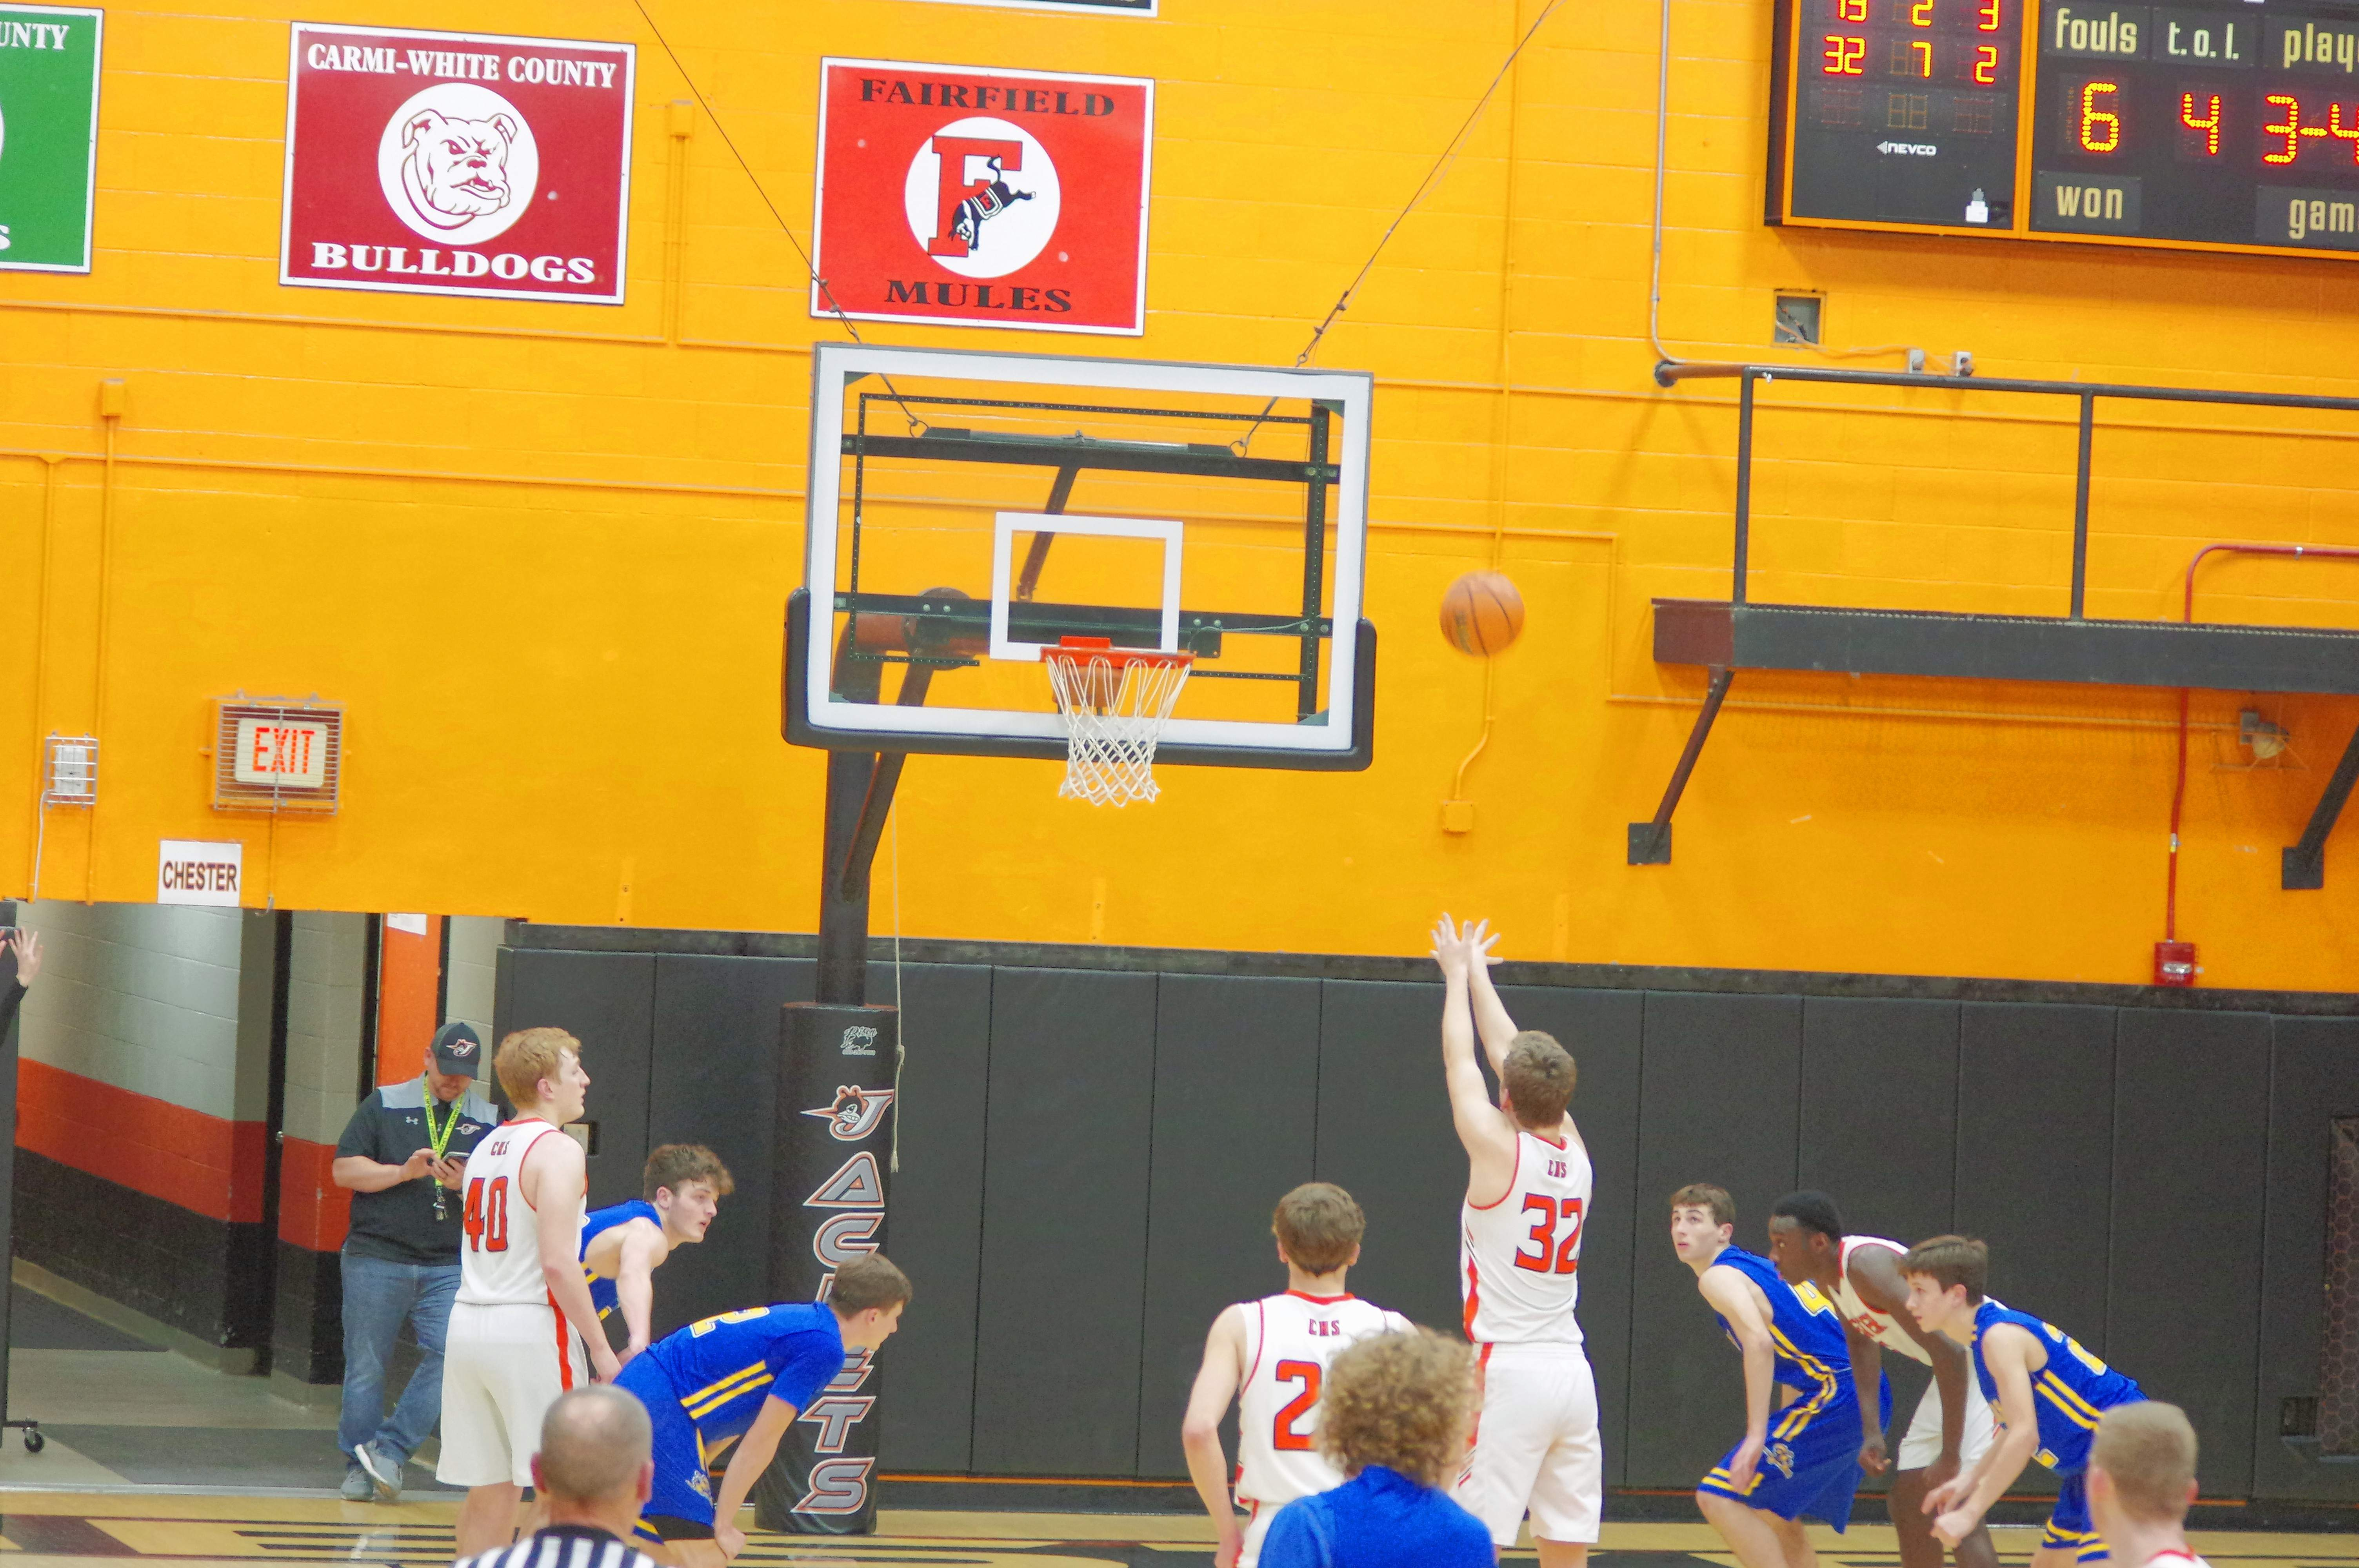 Ian Reith (32), hits one of his 11 free throws in the win over Trico.